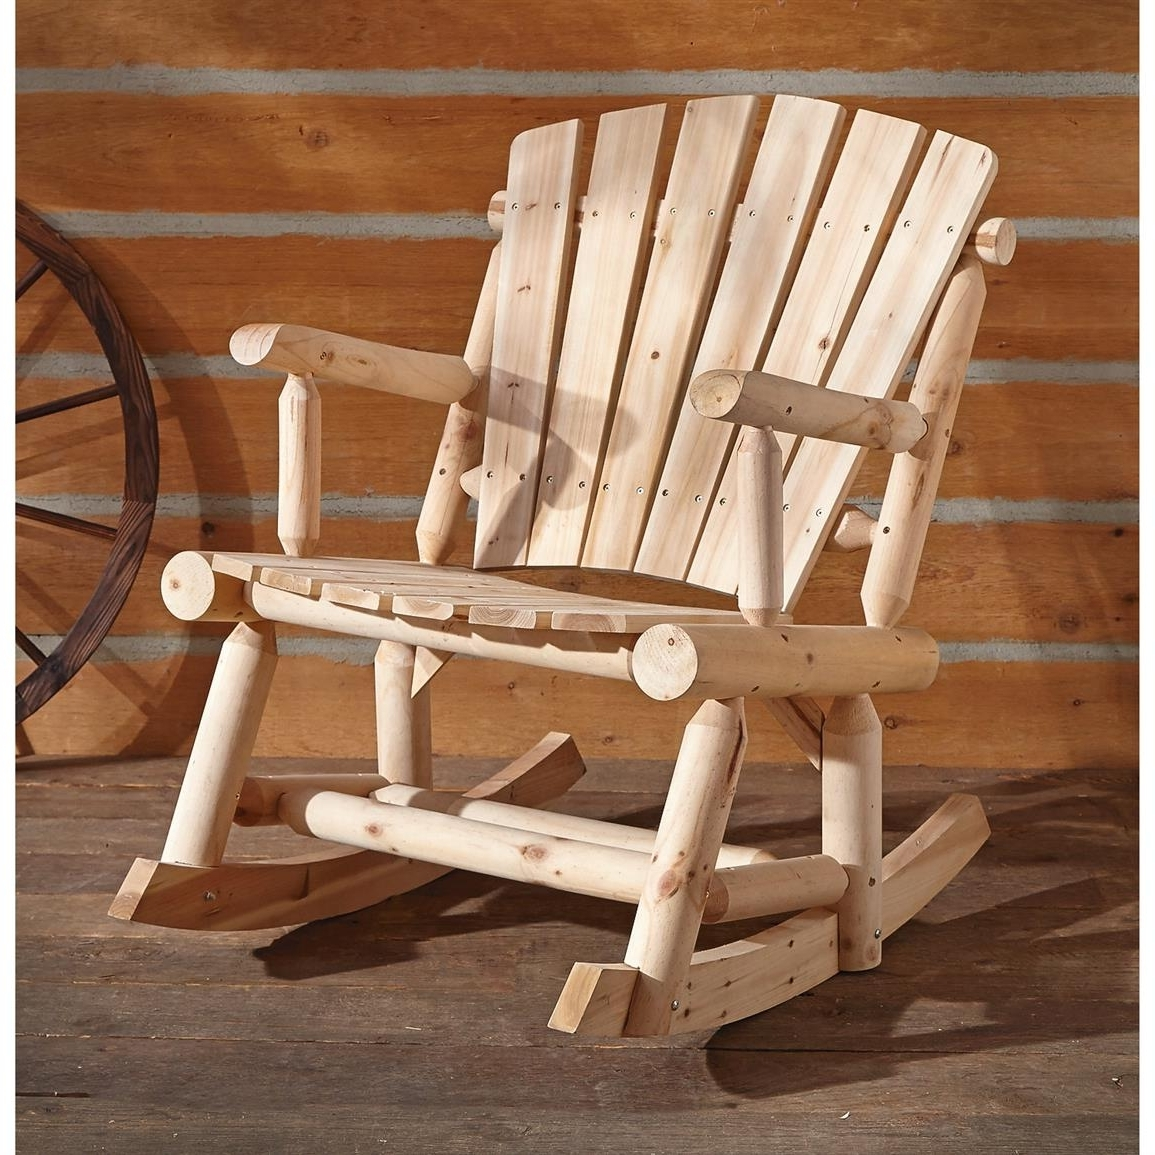 Oversized Patio Rocking Chairs Inside Well Known Castlecreek Oversized Adirondack Rocker – 657797, Patio Furniture At (View 2 of 20)